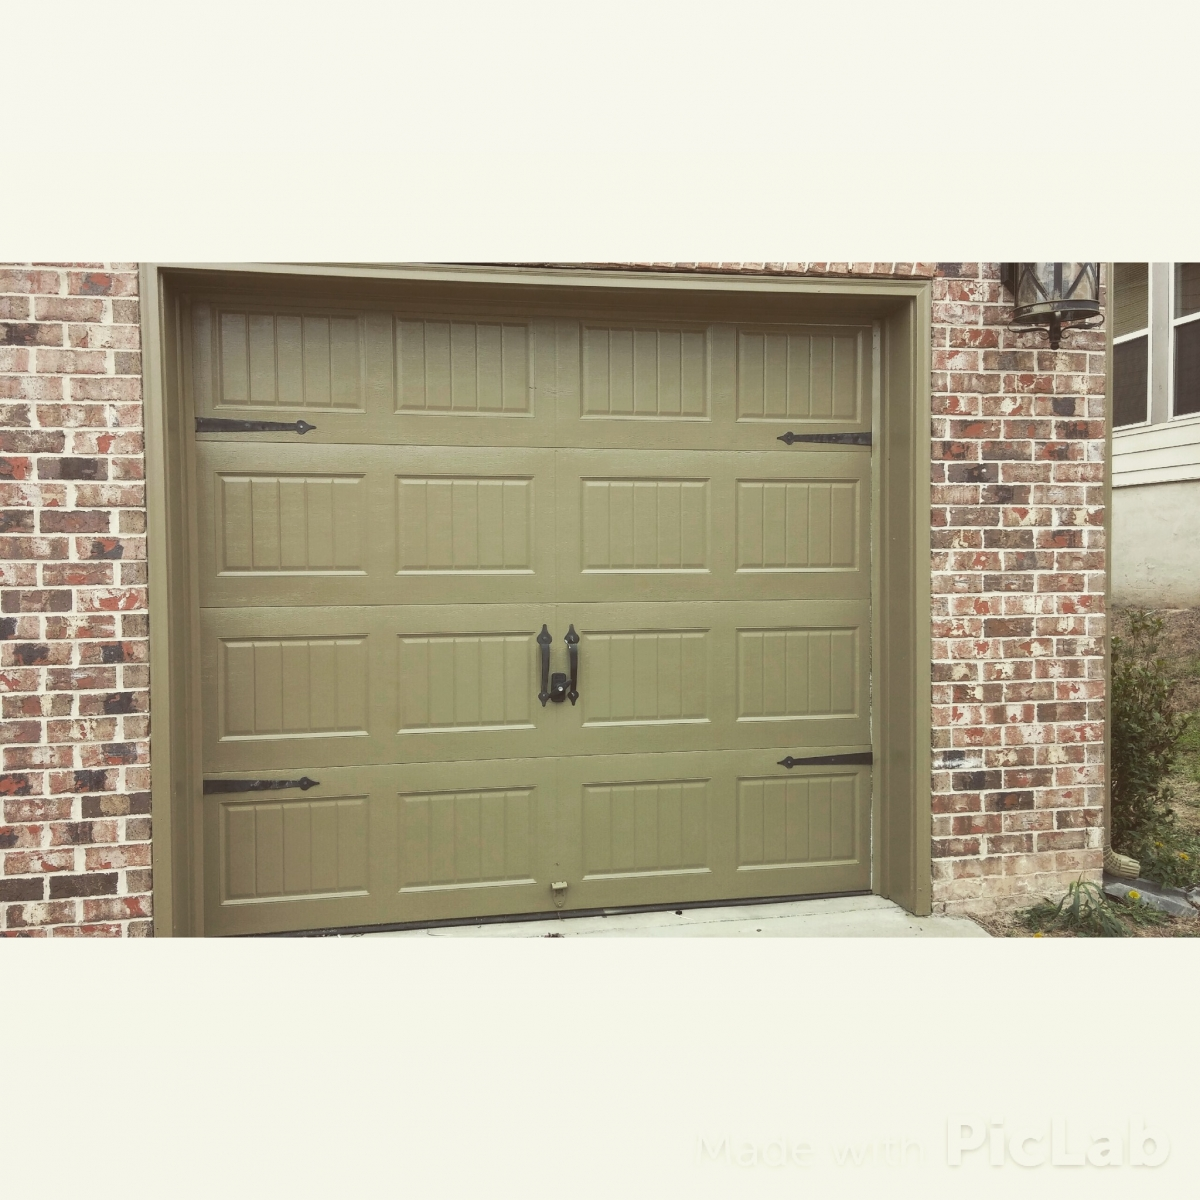 1200 #926439 Why Us Superior Garage Doors Of Atlanta picture/photo Overhead Doors Atlanta 36591200